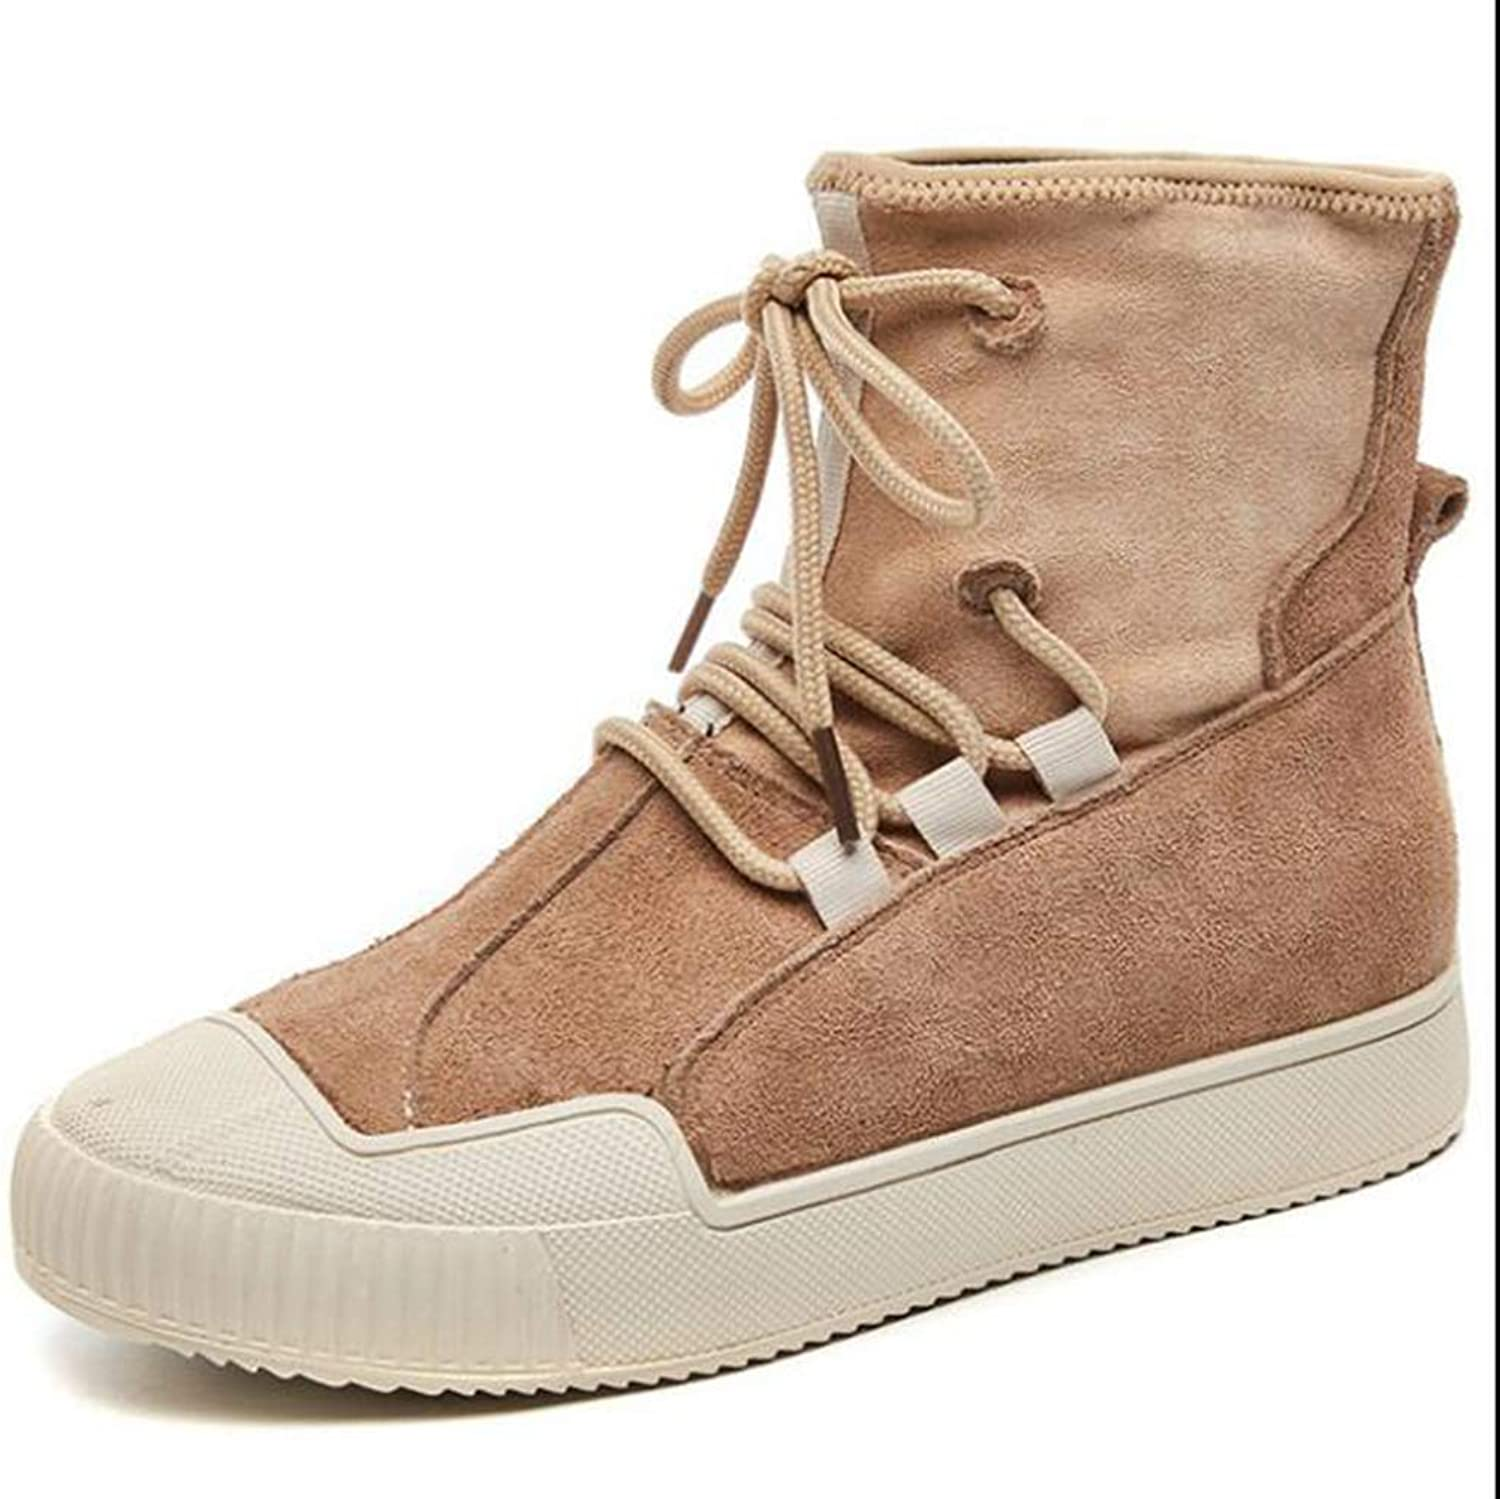 Hoxekle Sneakers Women Warming Boots Suede Outdoor Winter Lace Up Casual shoes Durable Female Ankle Boot Footwear